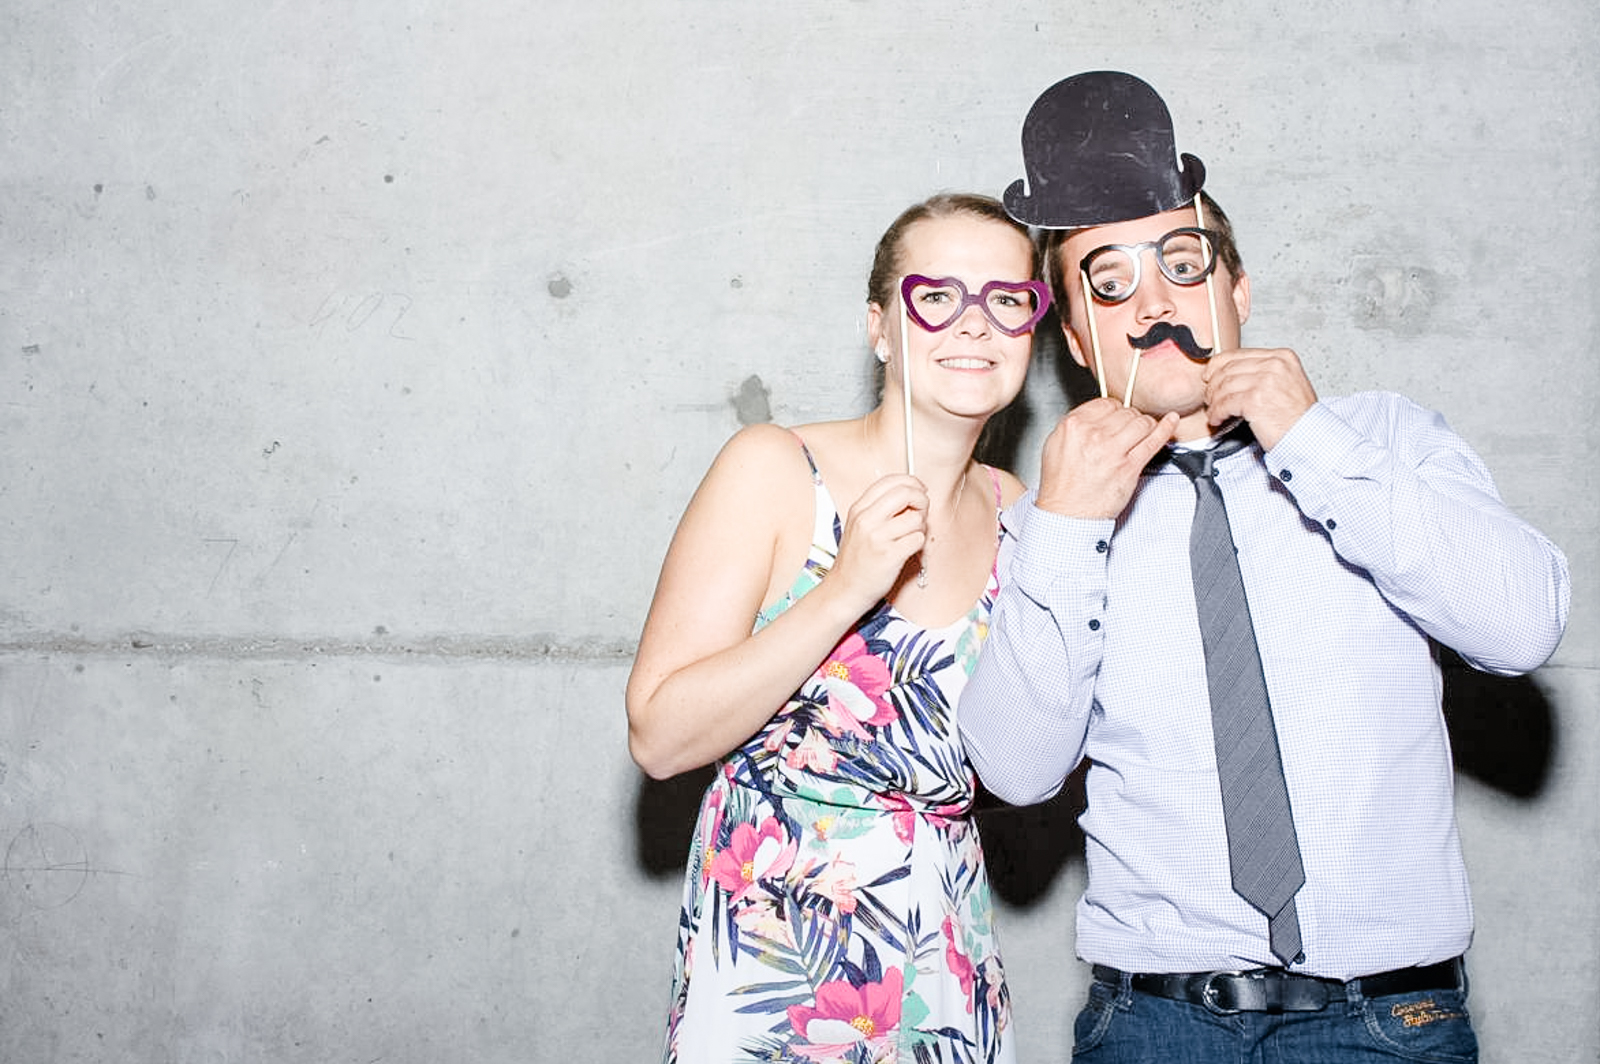 Monstergraphie_Photobooth_Zeche_Zollverein-11.jpg?fit=1600%2C1064